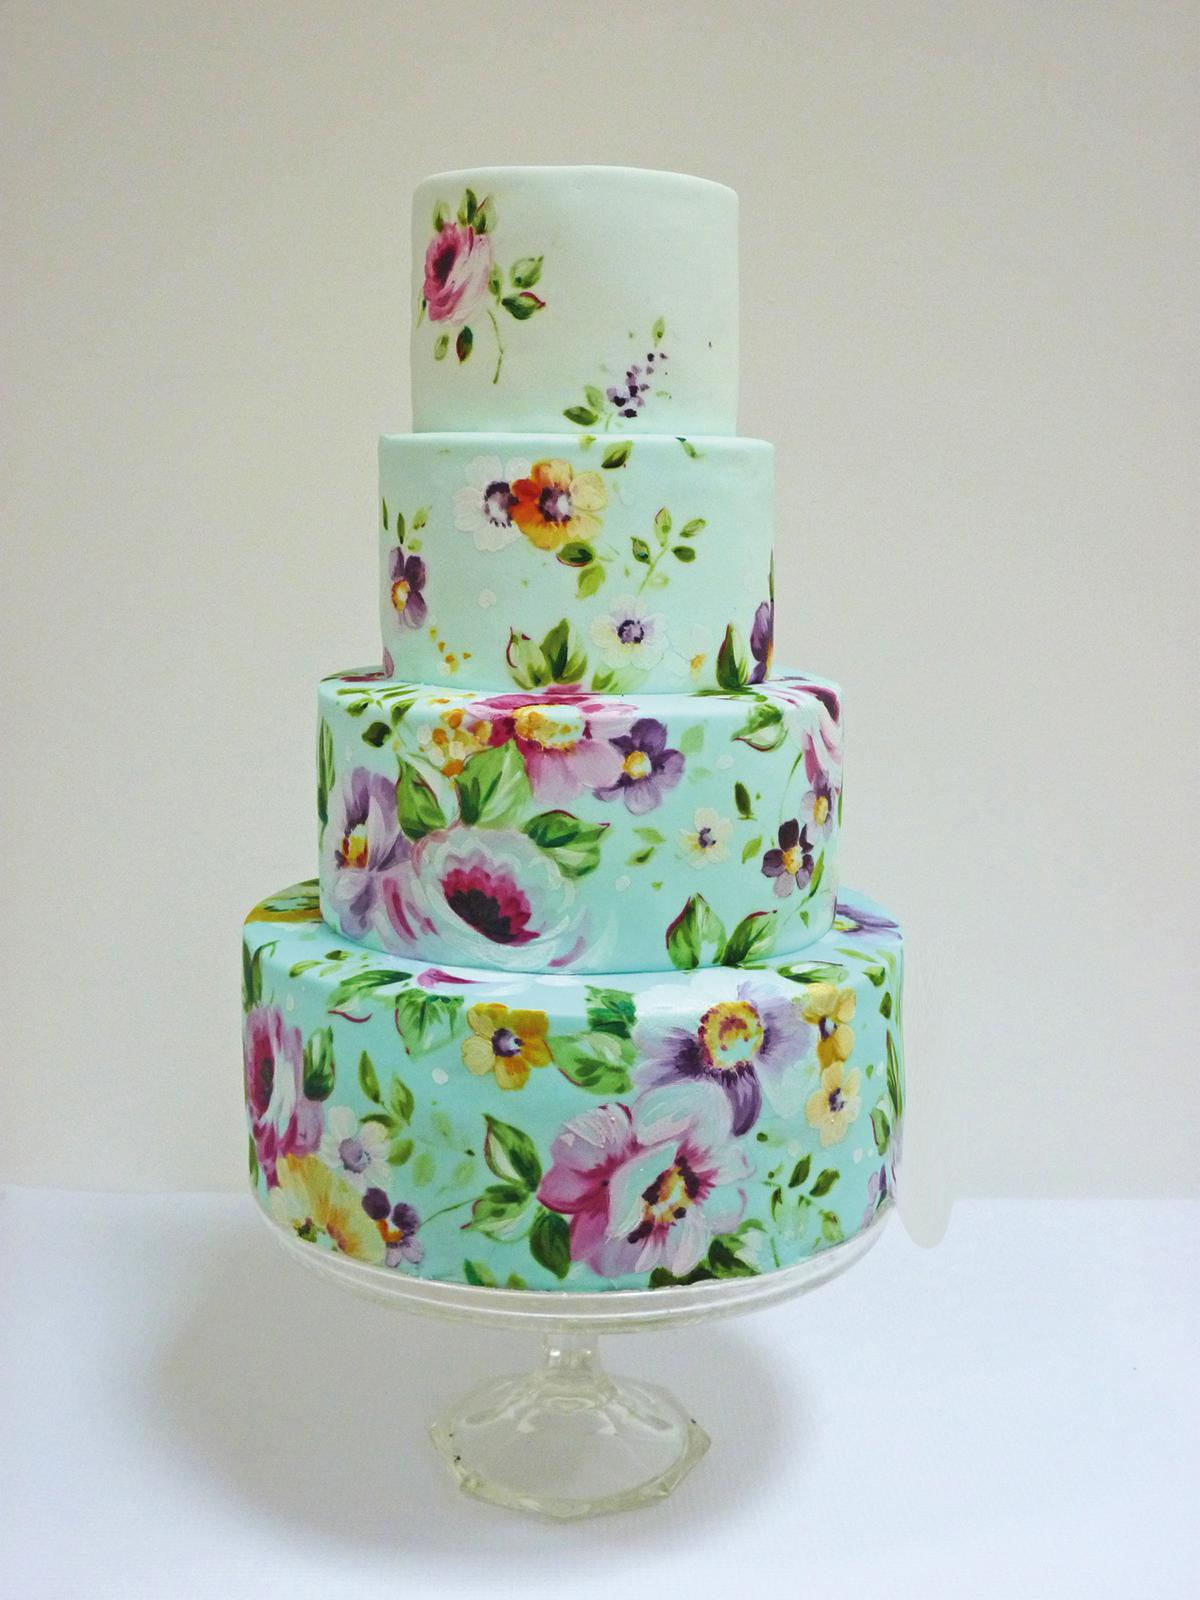 Floral wedding cakes - Nevie-pie cakes